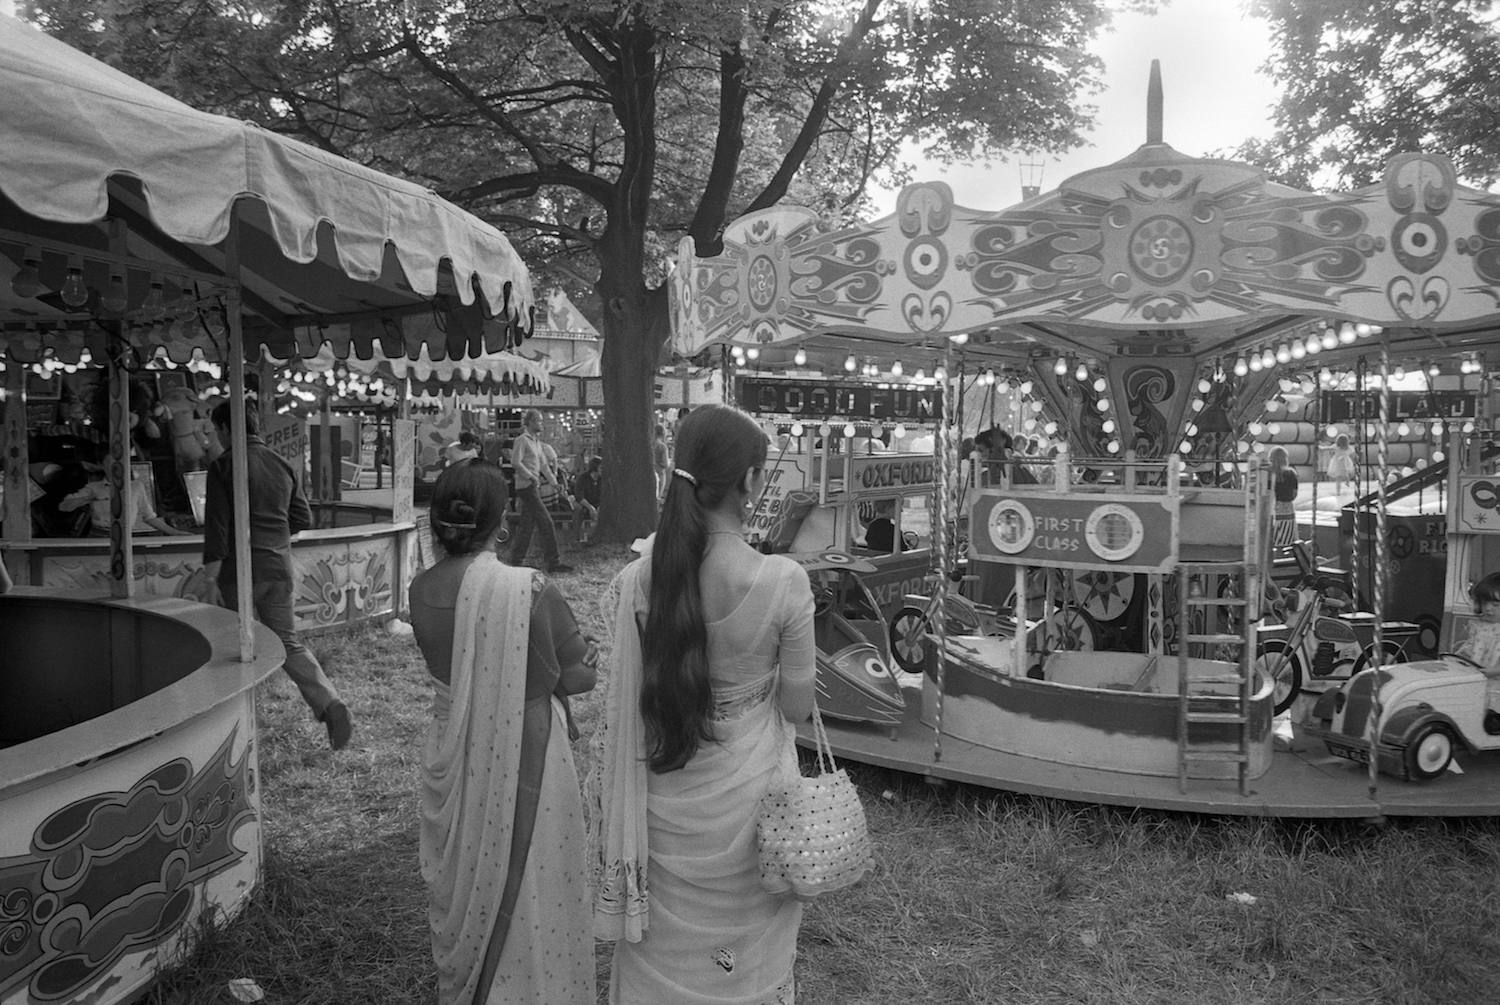 Richmond funfair - 1980s